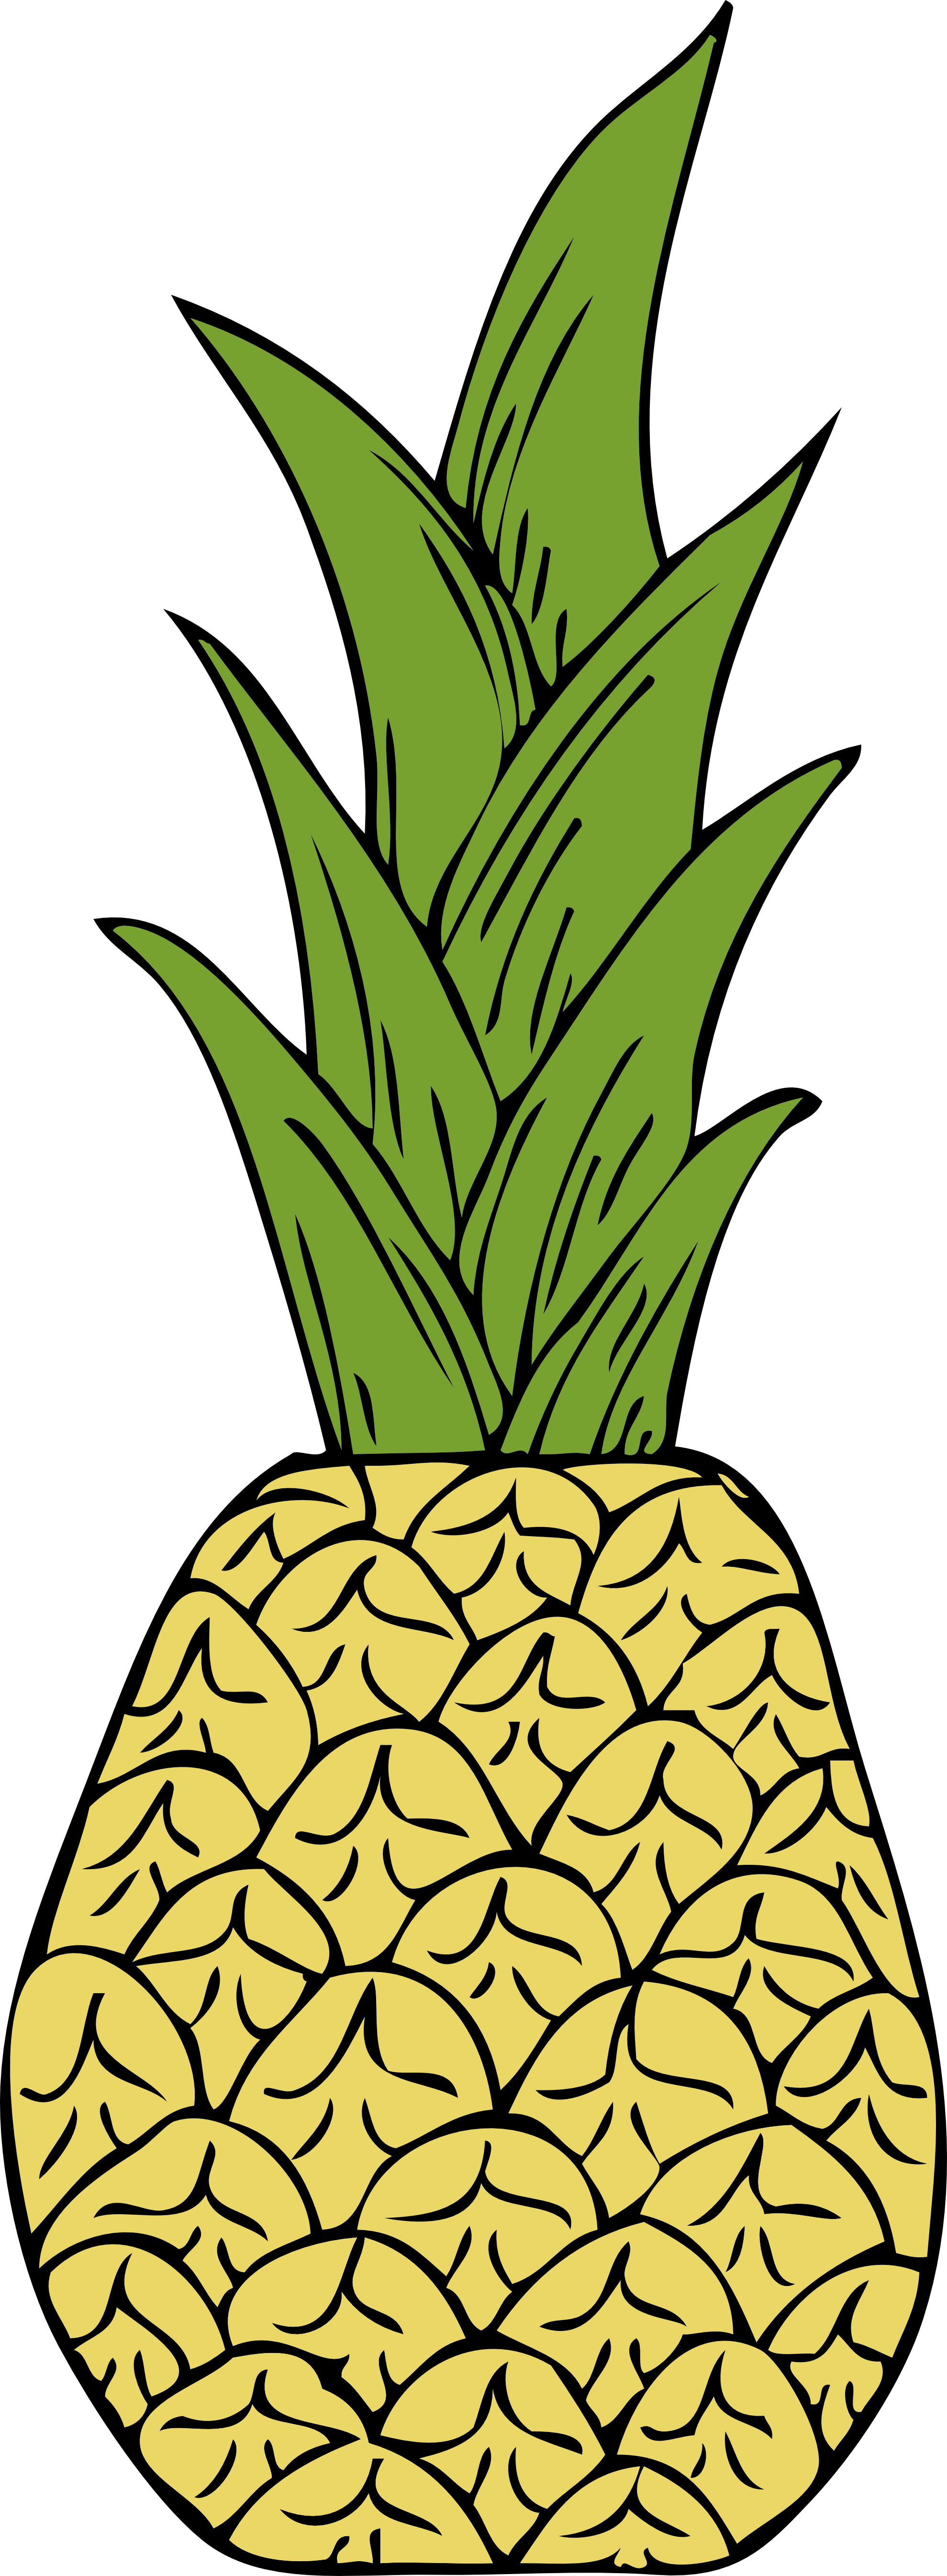 Pineapple Vector Png | Clipart Panda - Free Clipart Images